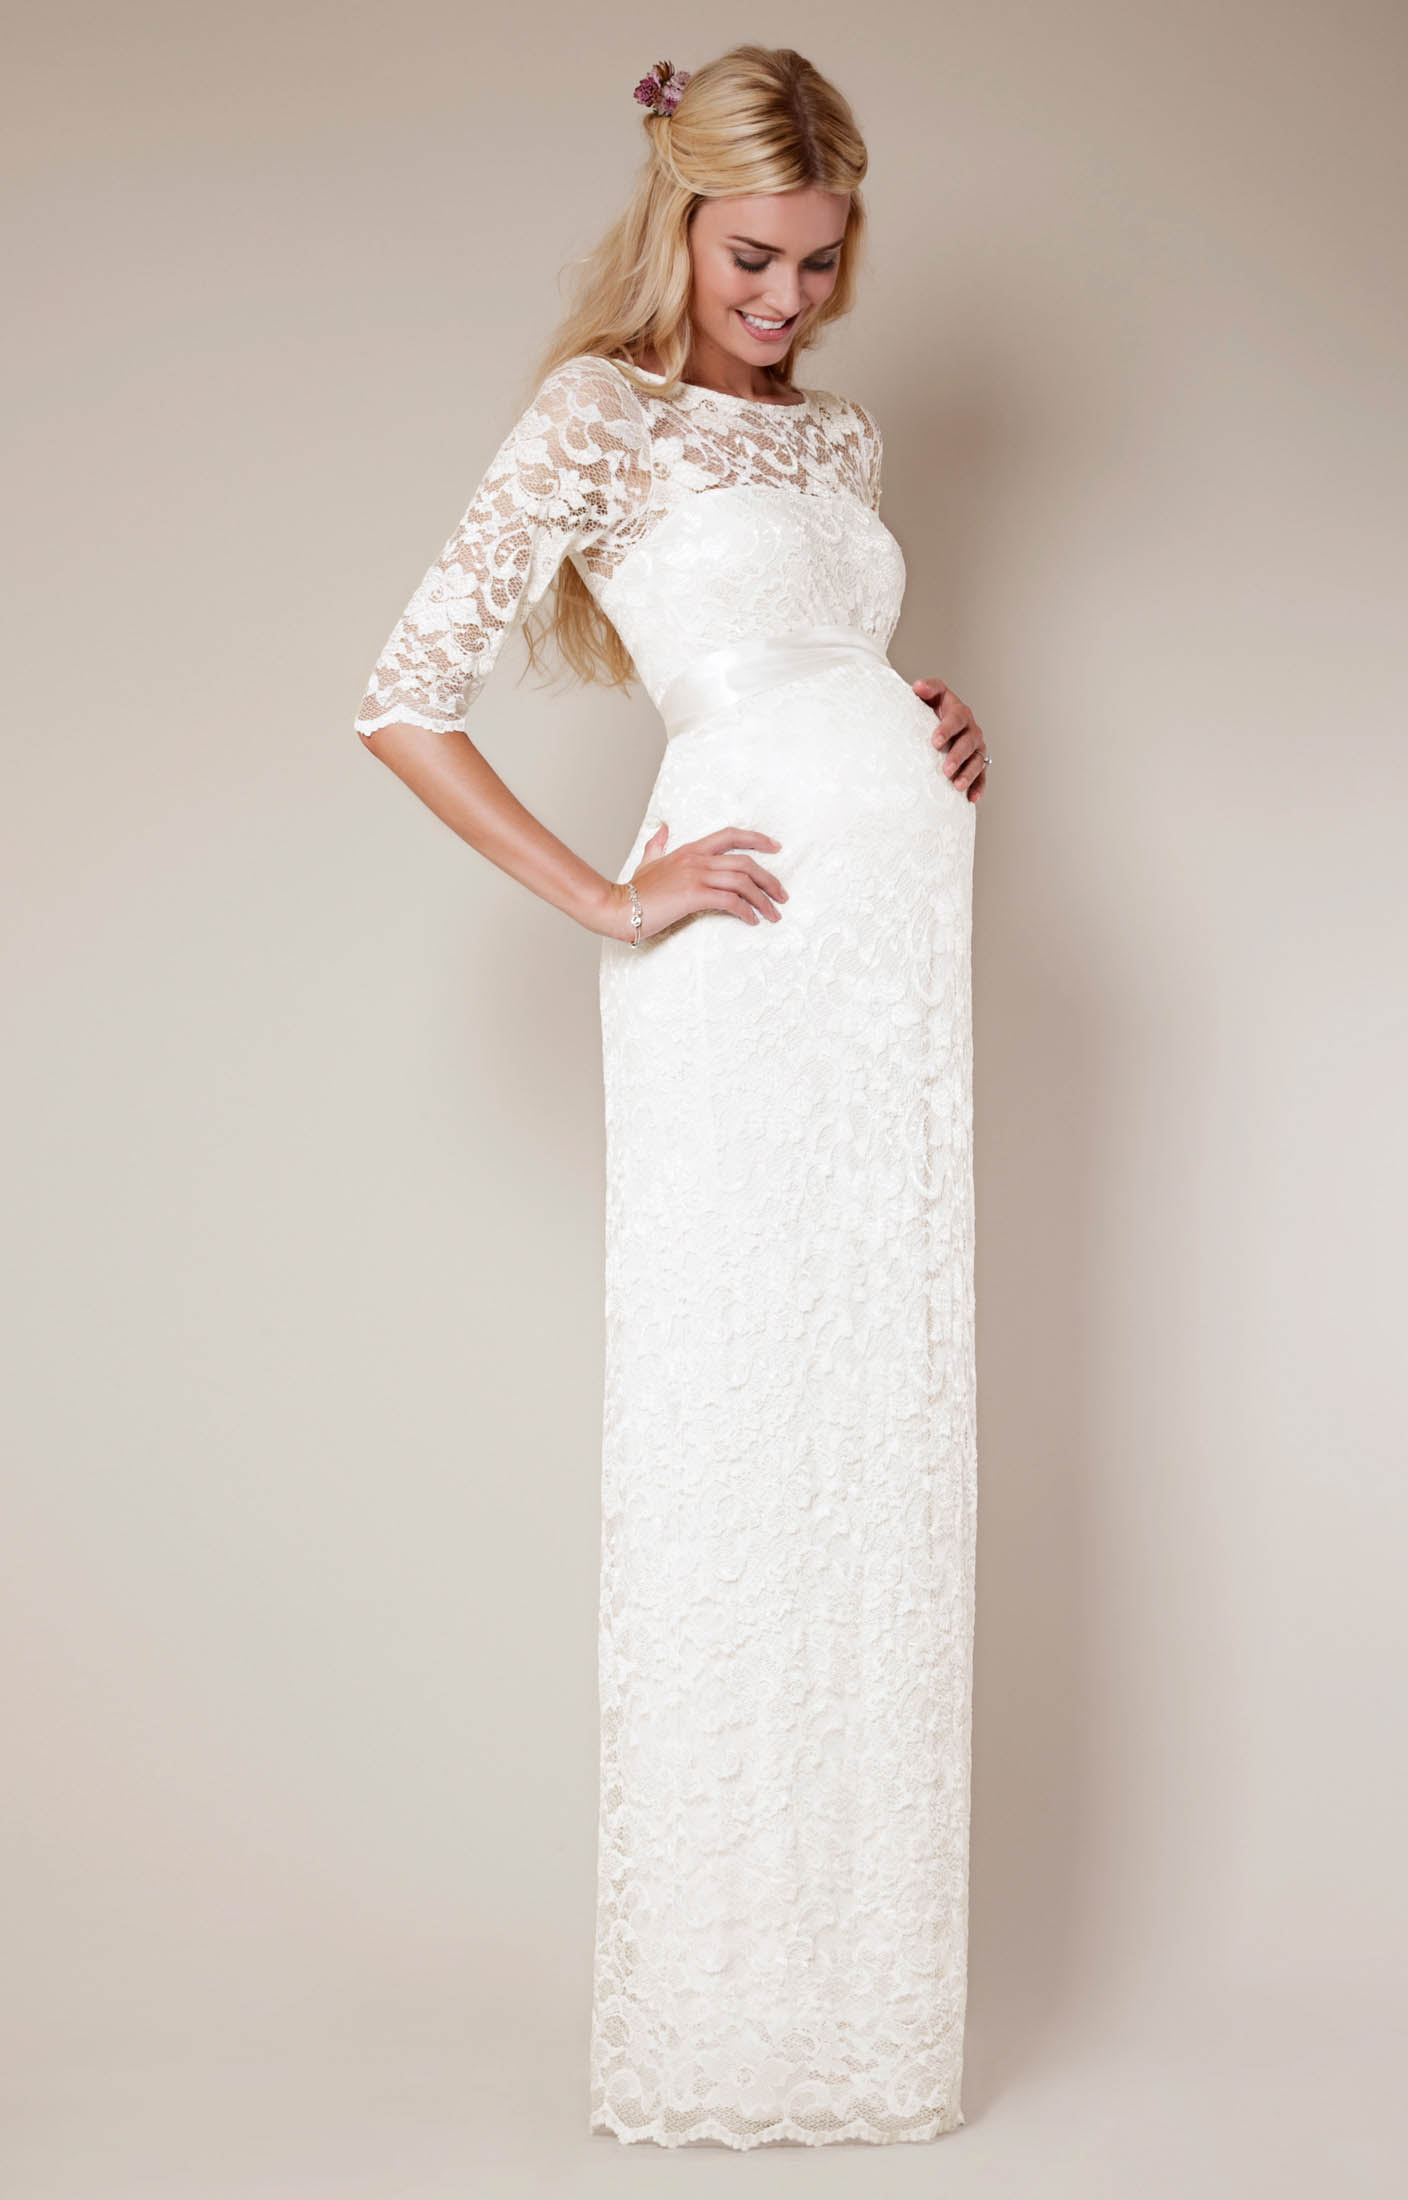 Amelia lace maternity wedding dress long ivory maternity amelia lace maternity wedding dress long ivory maternity wedding dresses evening wear and party clothes by tiffany rose ombrellifo Image collections